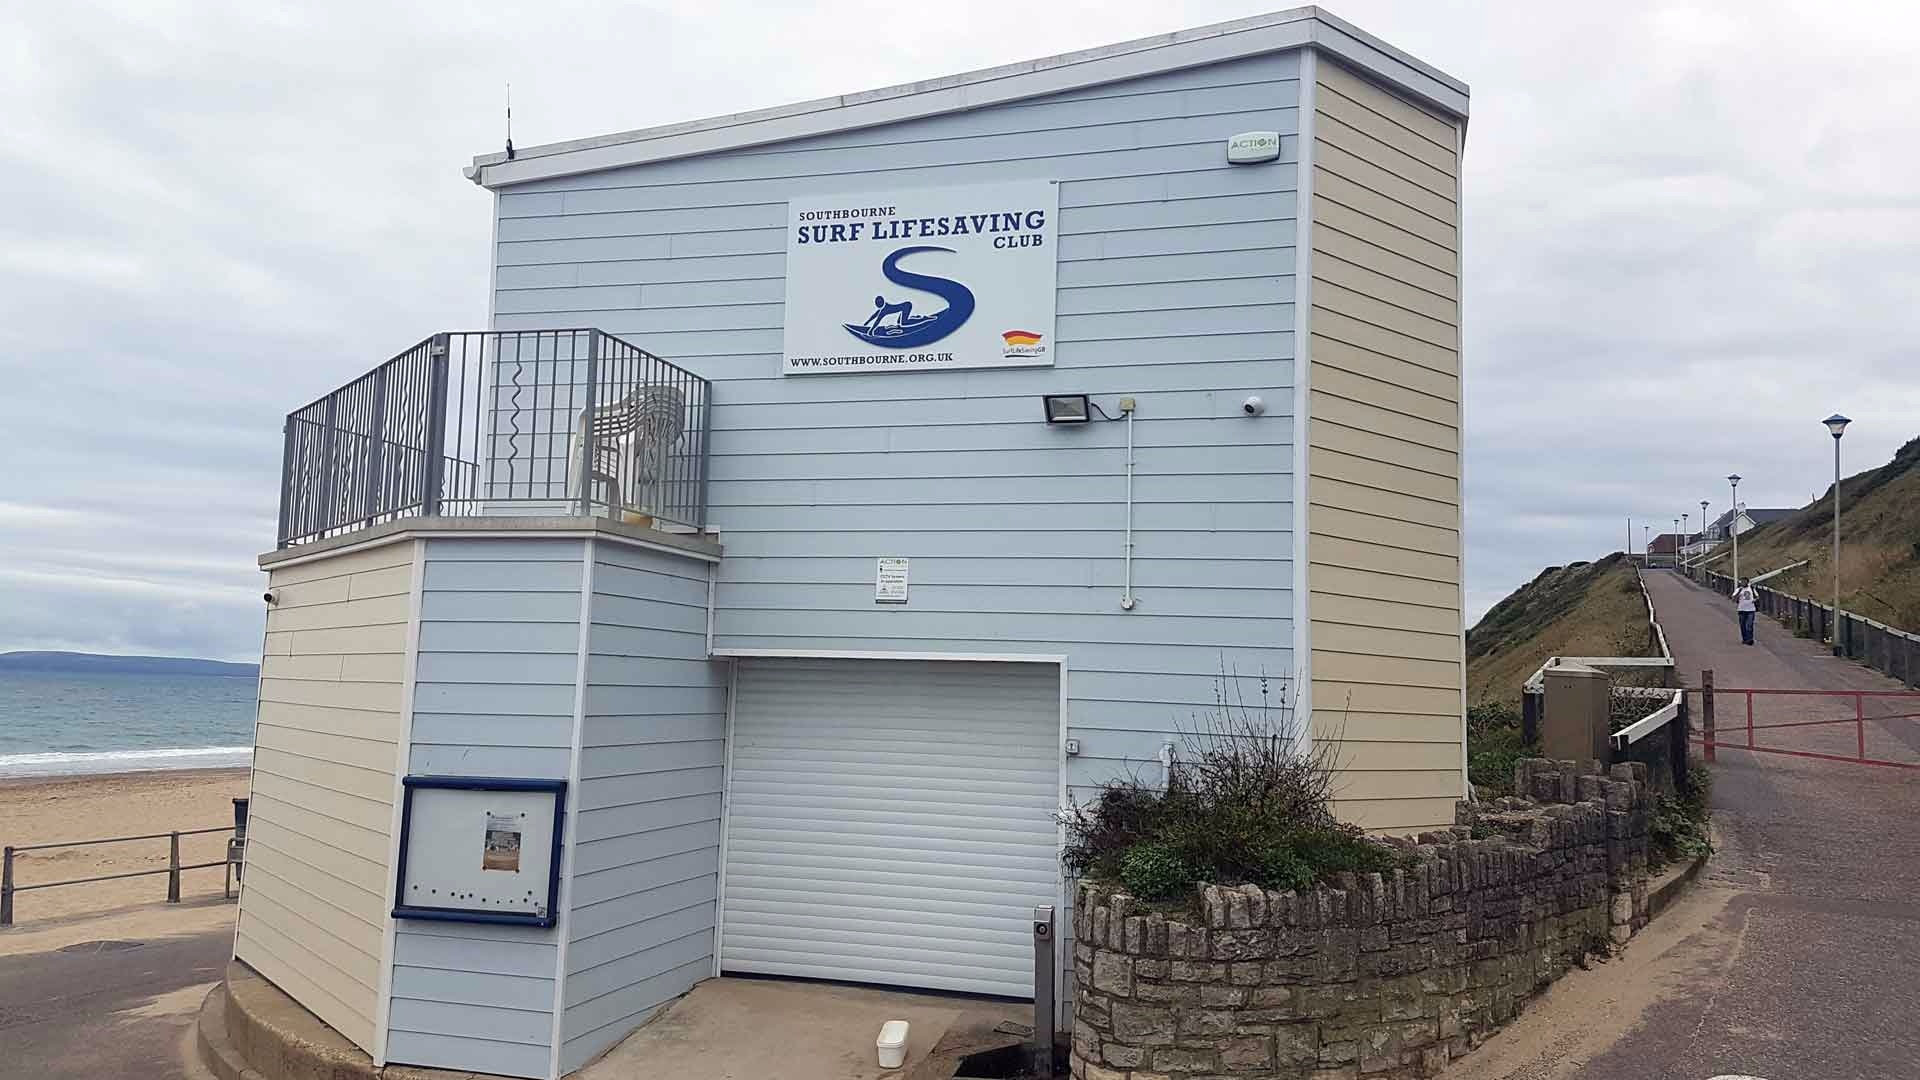 <b>southbourne-on-sea-gallery4.jpg</b> <br/> Southbourne Surf Lifesaving Club